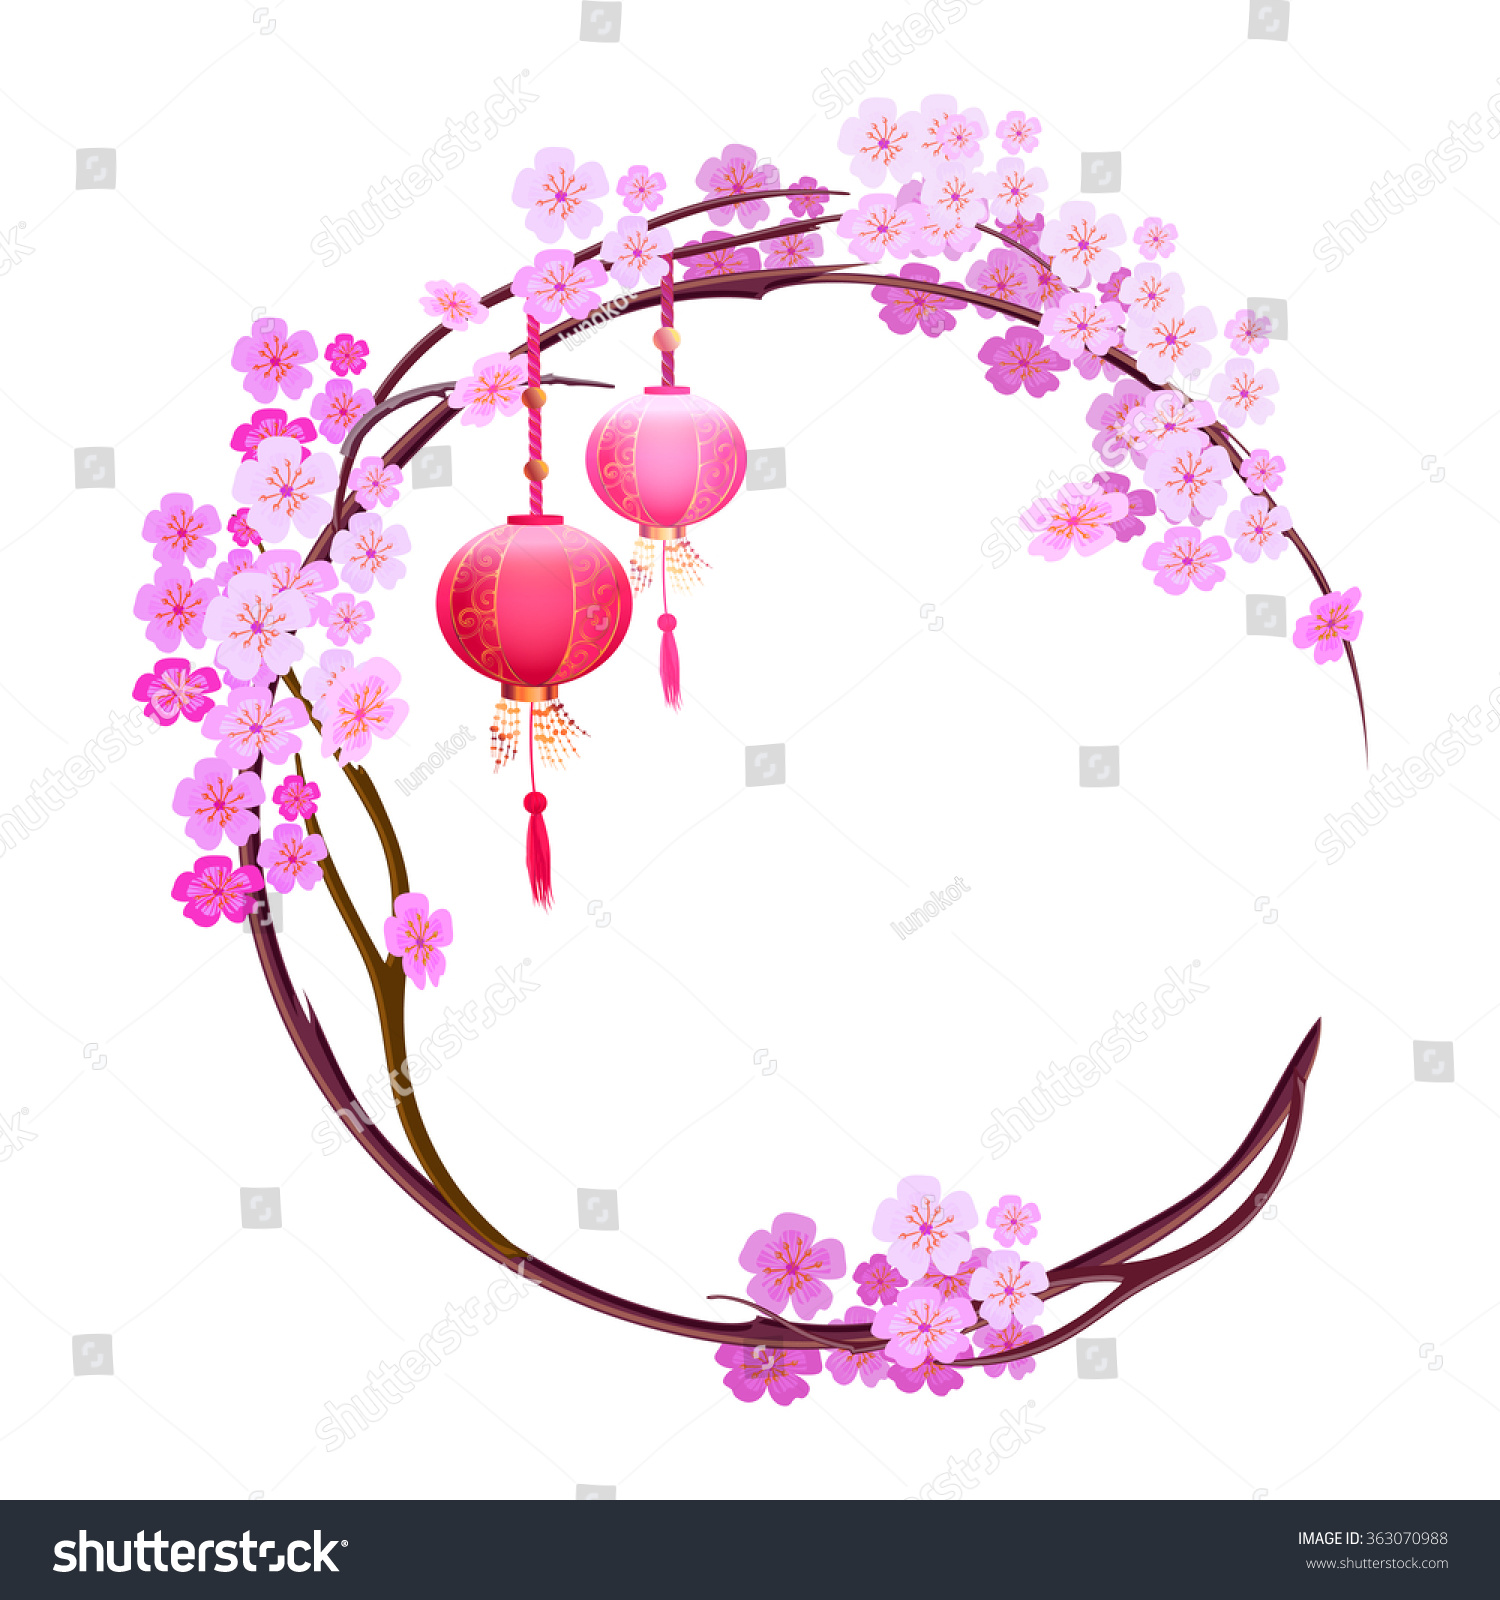 Background Cherry Blossoms Spring Japanese Festival Stock Vector ...